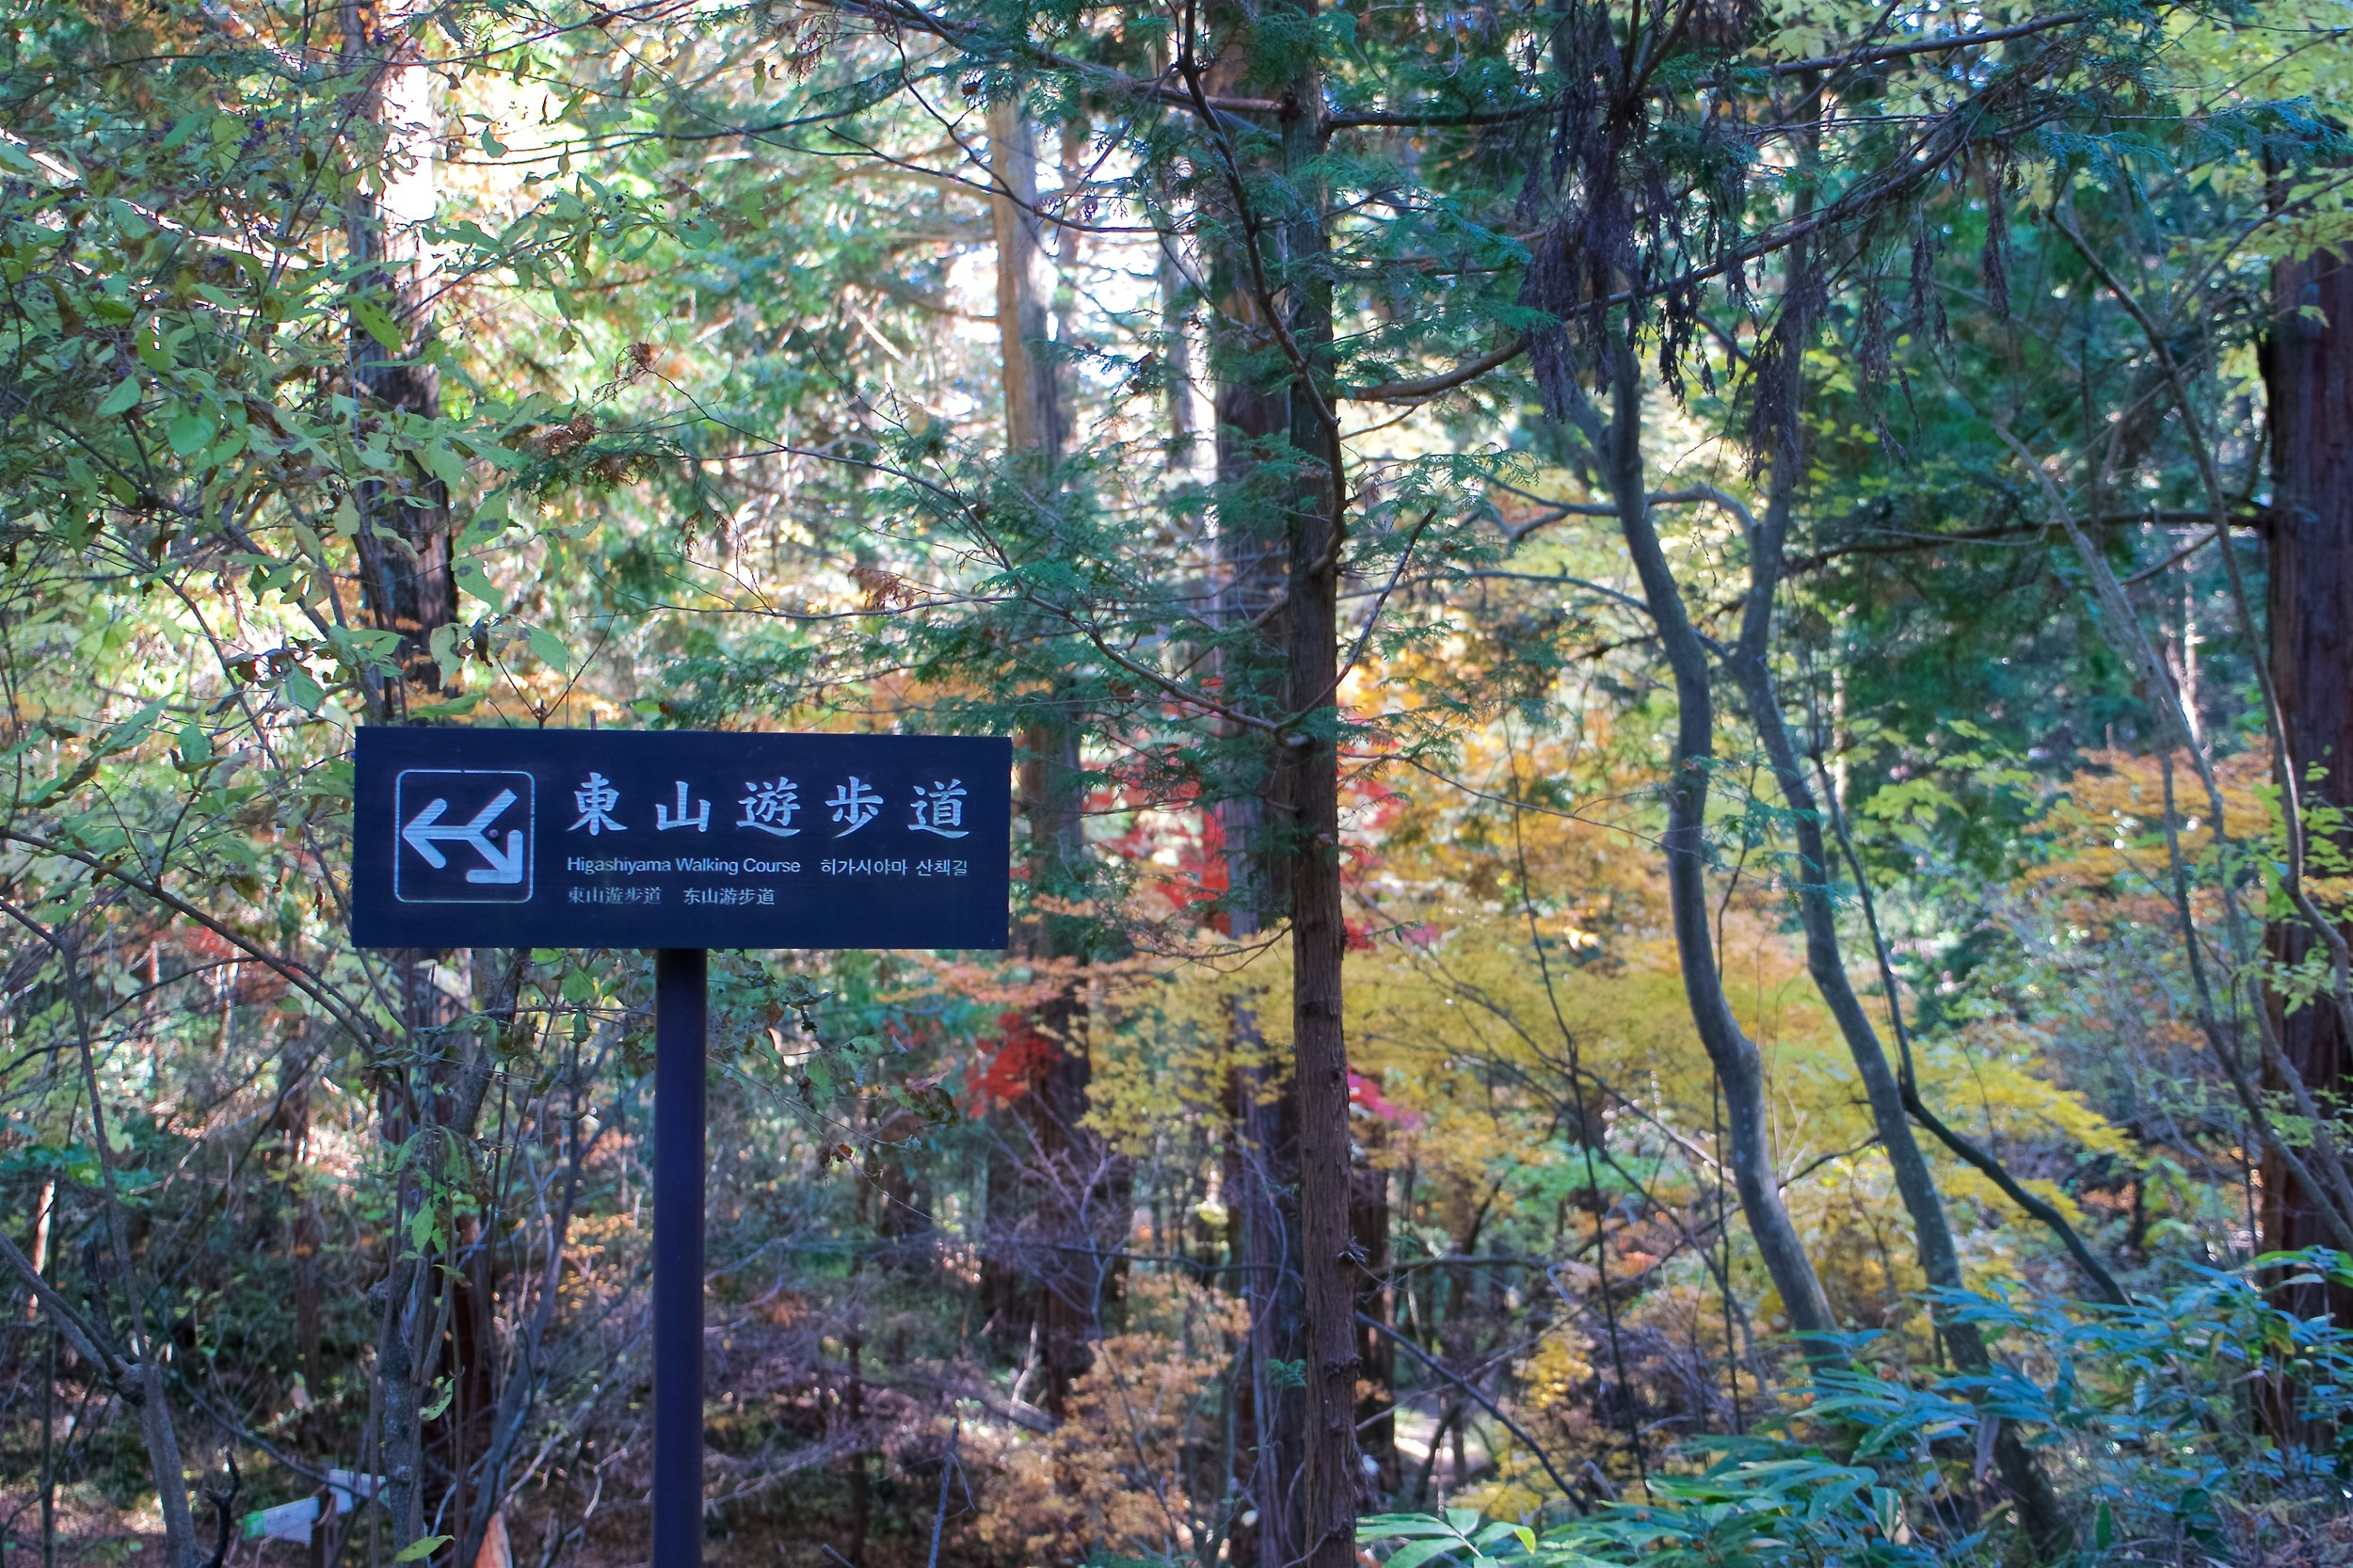 Higashiyama Walking Course sign (the line pointing up is a path which you don't take, and the arrows are paths you take, depending on which direction you're doing the course